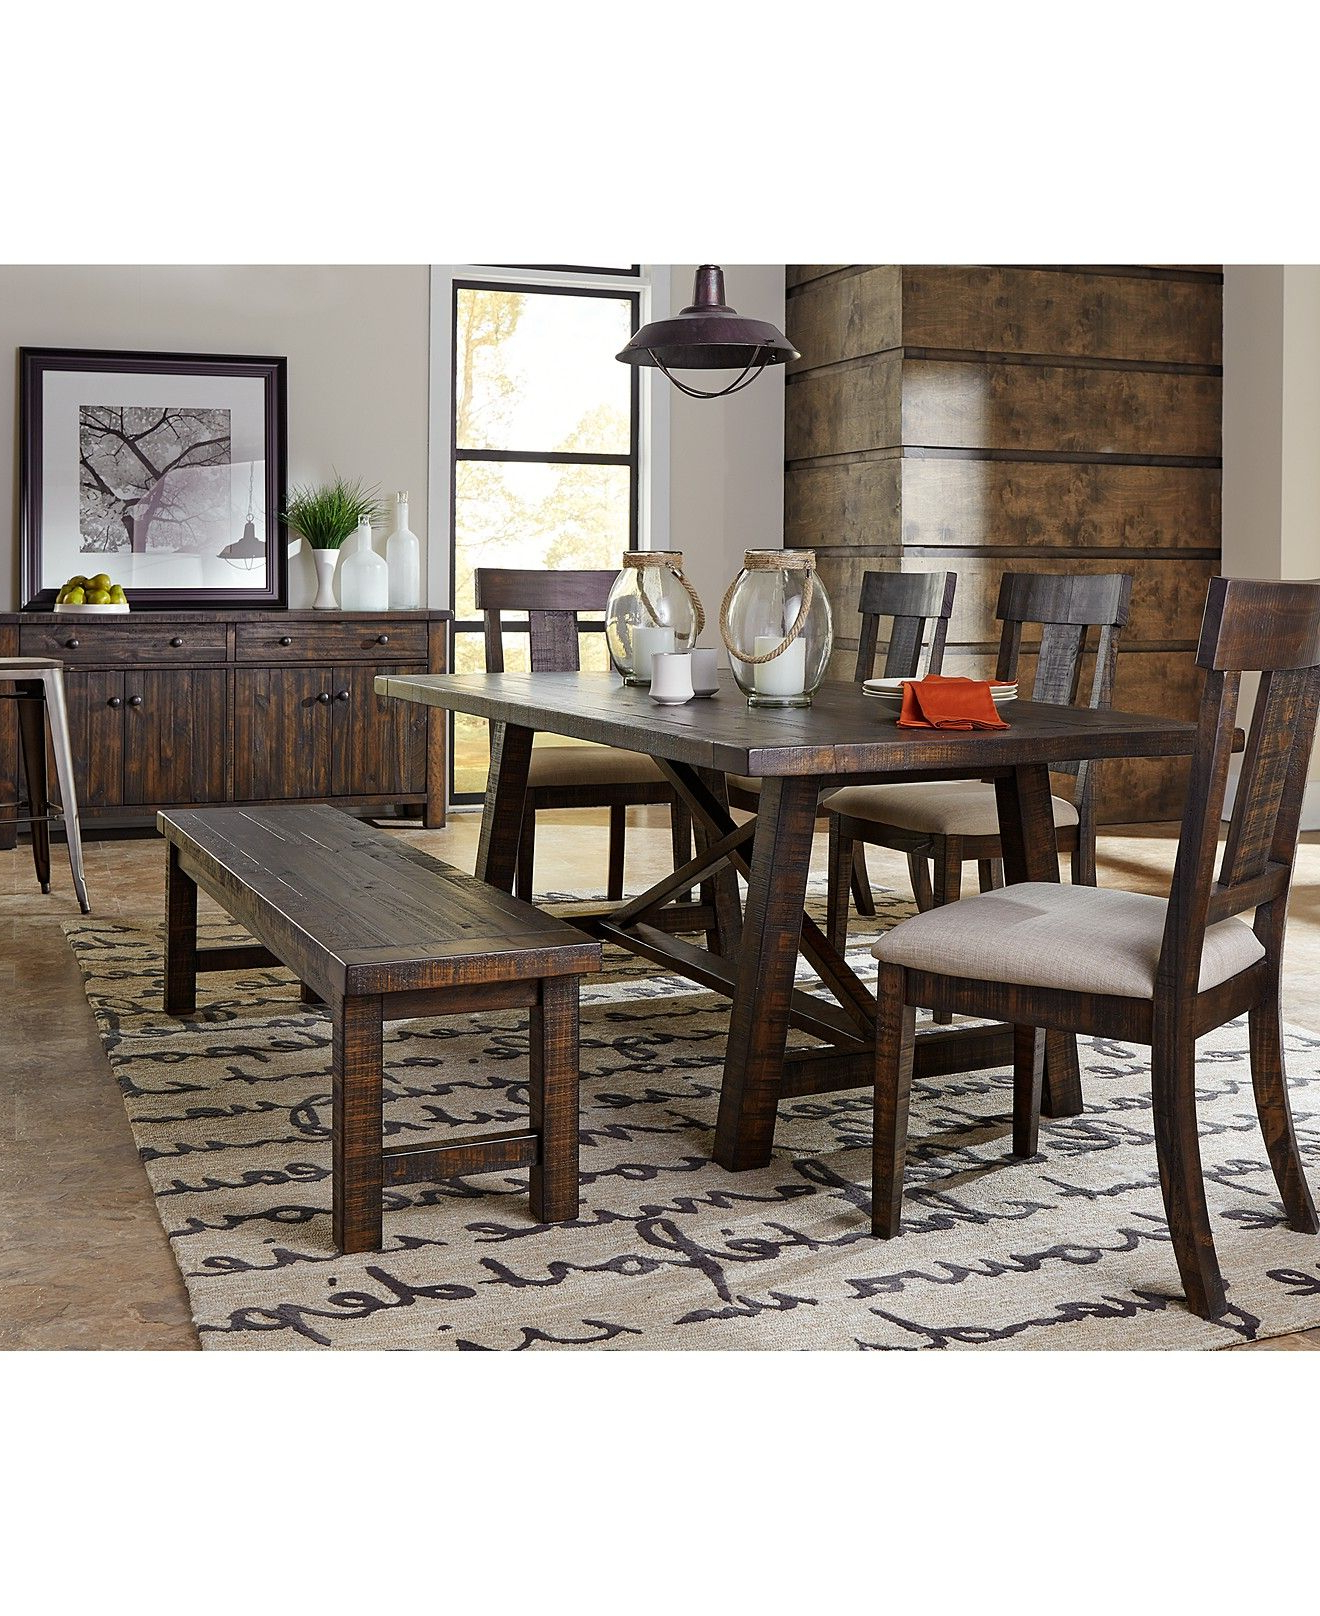 Latest Ember Dining Room Furniture Collection – Dining Room In Acacia Dining Tables With Black Rocket Legs (View 12 of 30)